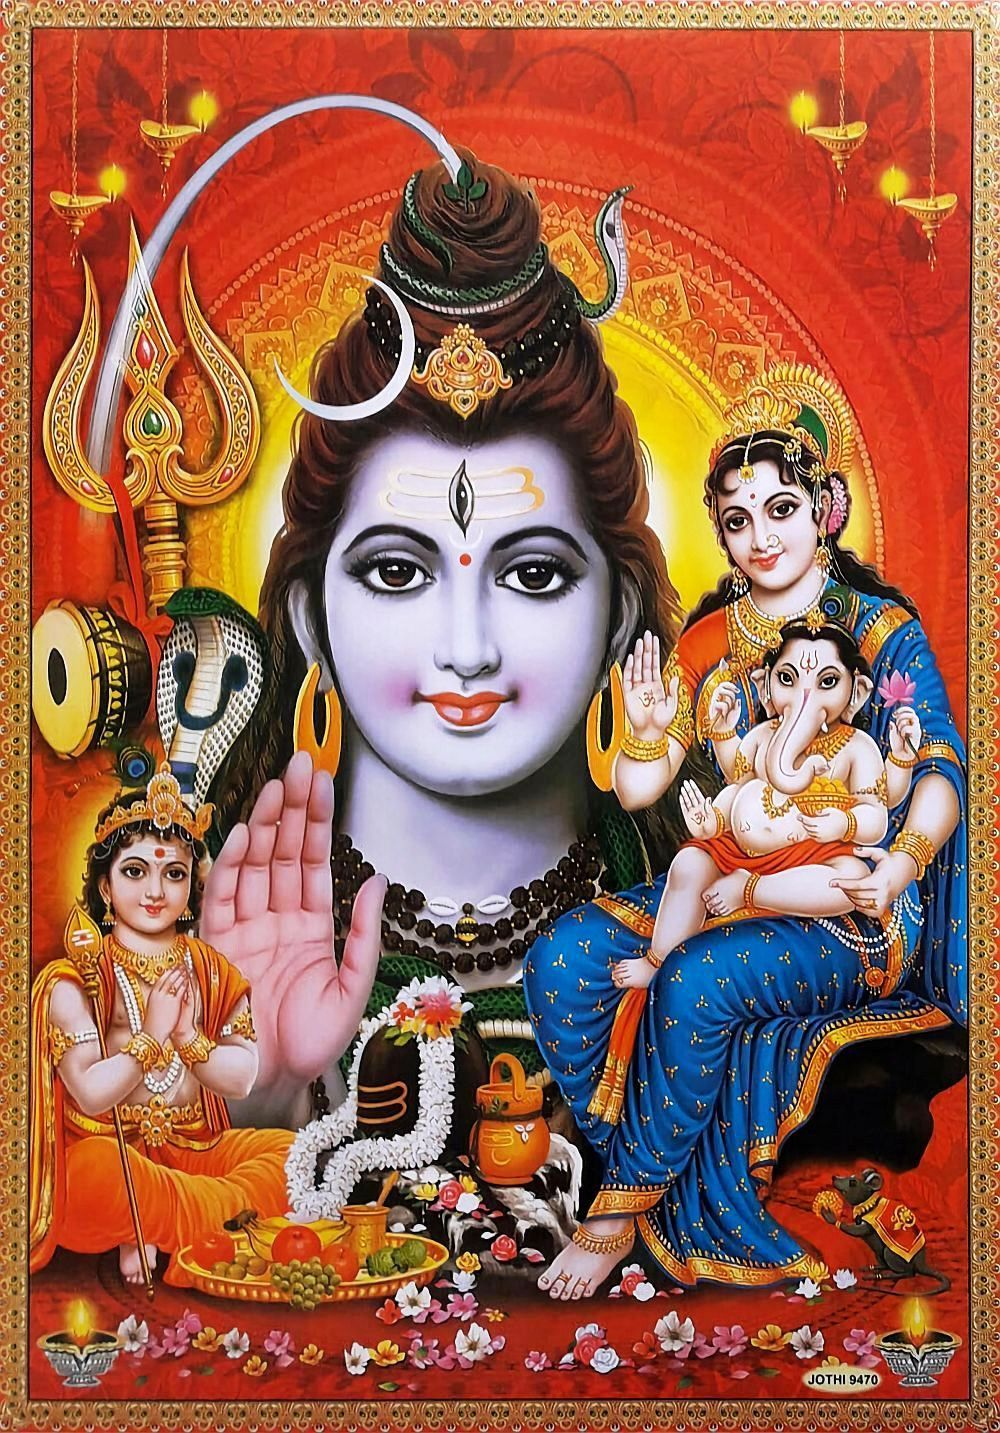 Pin by Neha Prasad on Indian God Lord shiva, Lord